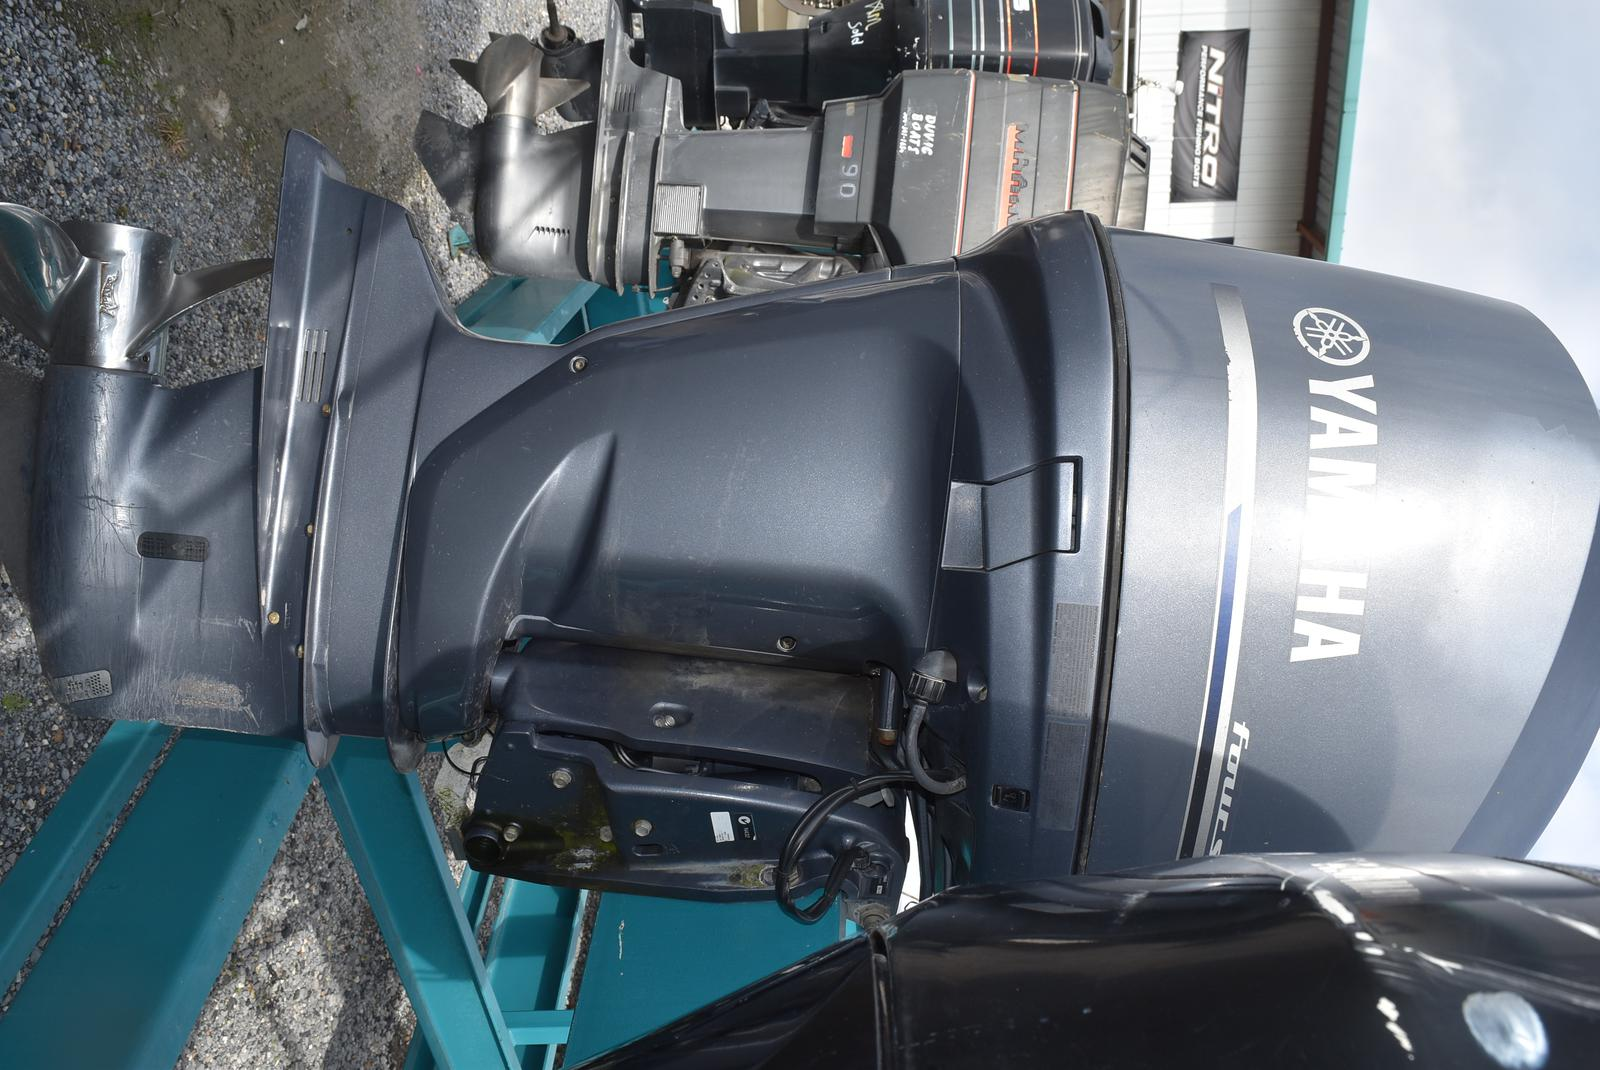 New  2014 Yamaha Outboard Motors Outboard in Marrero, Louisiana